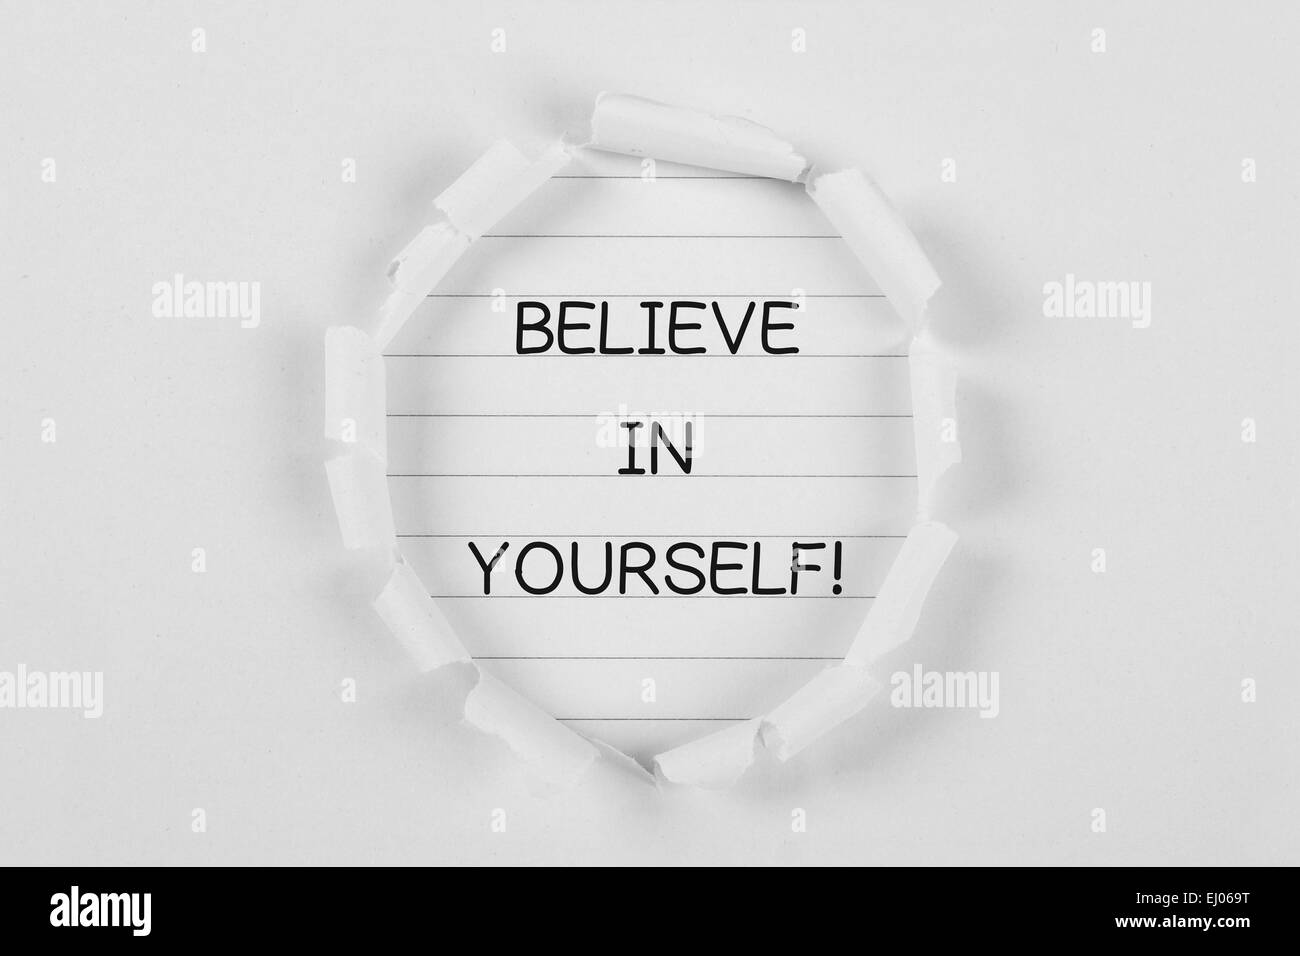 Believe in yourself on note paper with white tear paper. - Stock Image